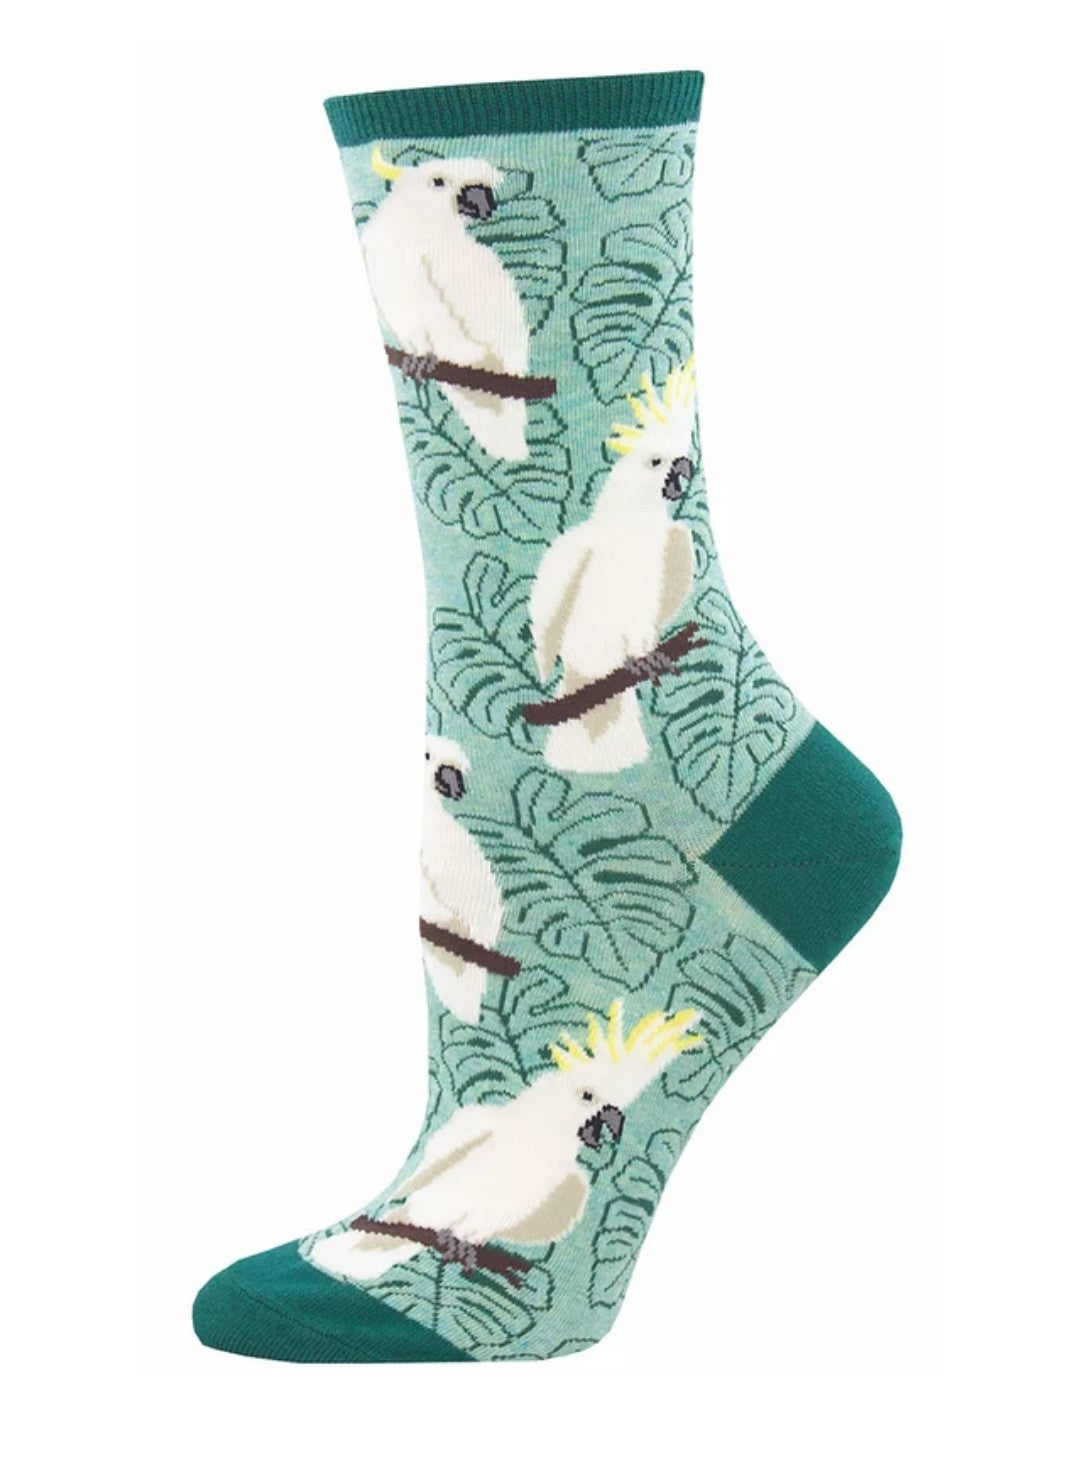 Socks - Womens - Cockatoo - Green